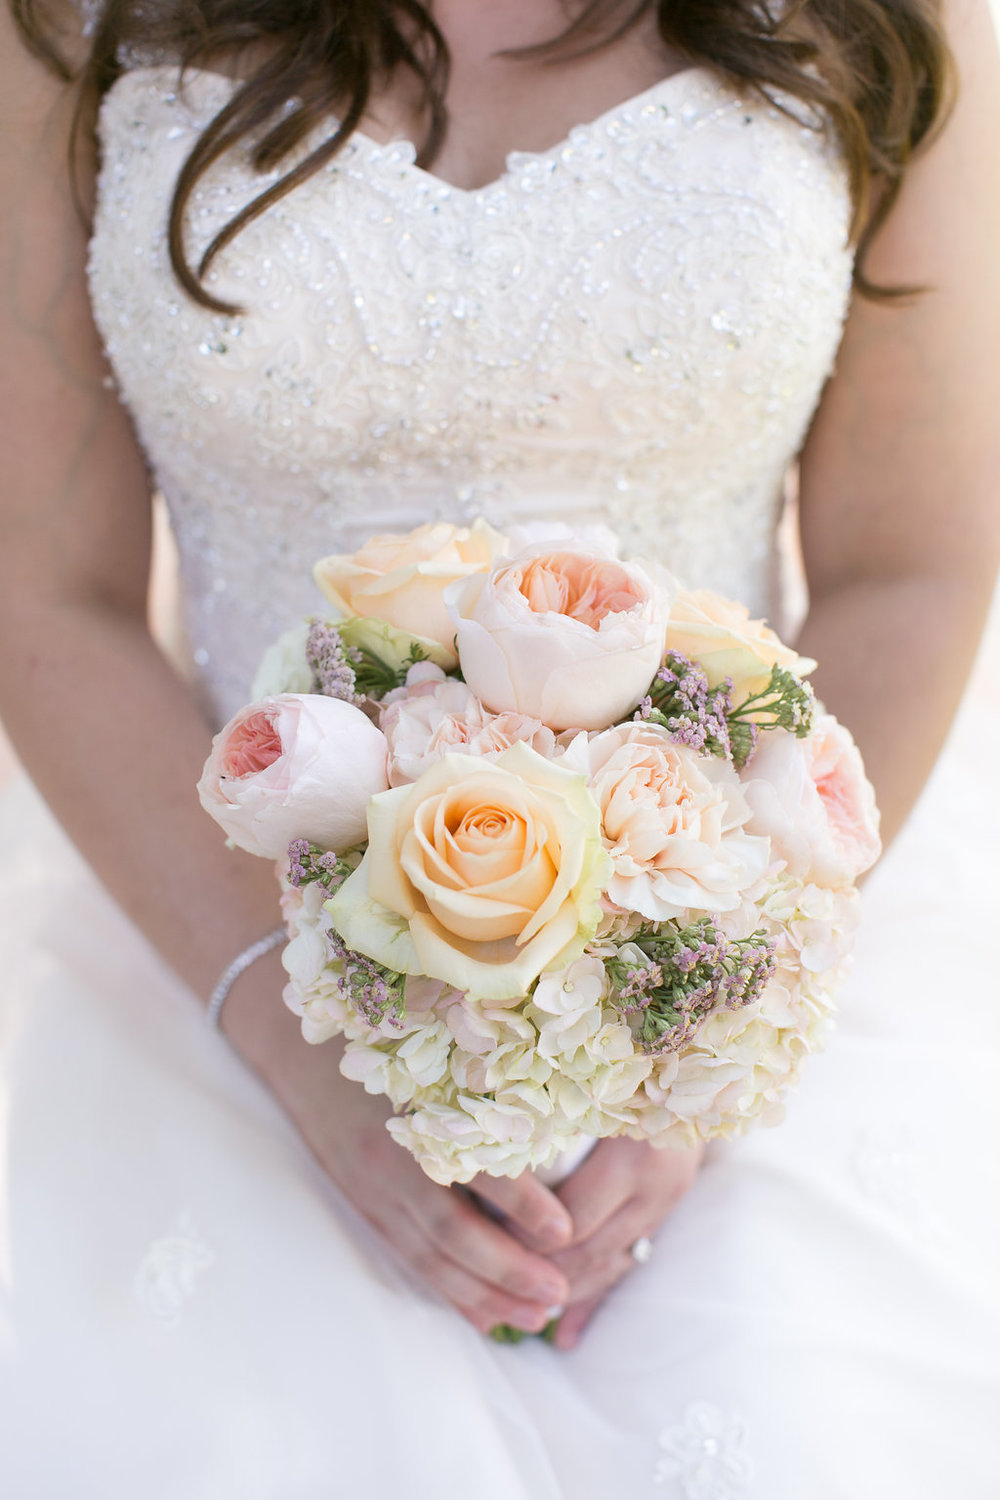 WilliamsWedding-bridalbouquet.jpg